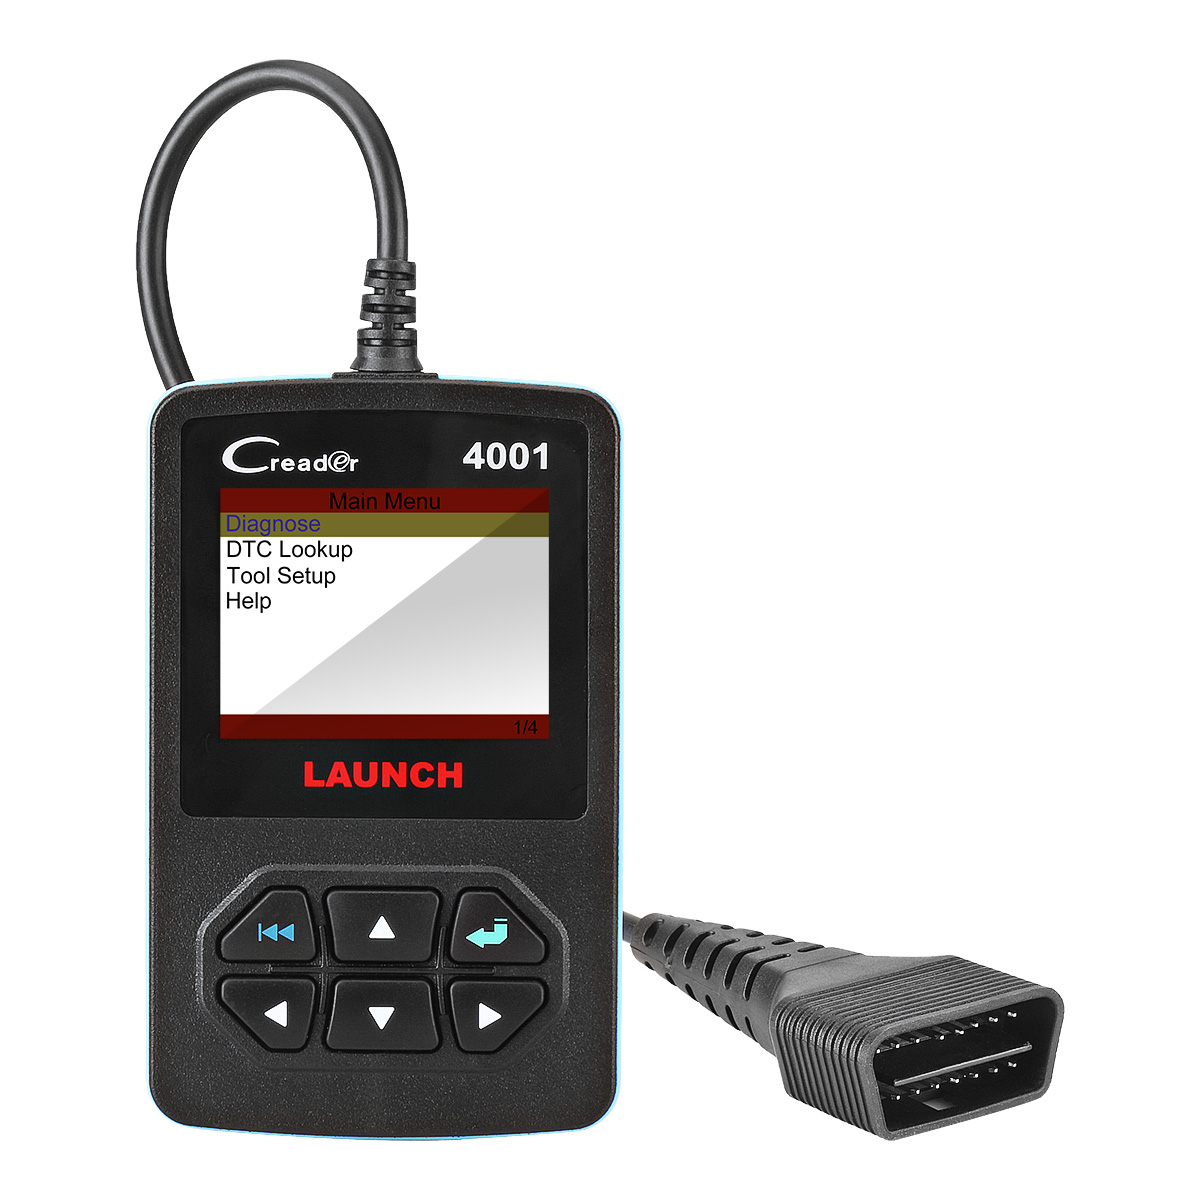 Car Code Reader, Launch CReader 4001 Diagnostic Scan Tool for Check Engine Light & Diagnostics, Support Read and Clear Error Codes, Query DTCs and Support 1-10 Modes